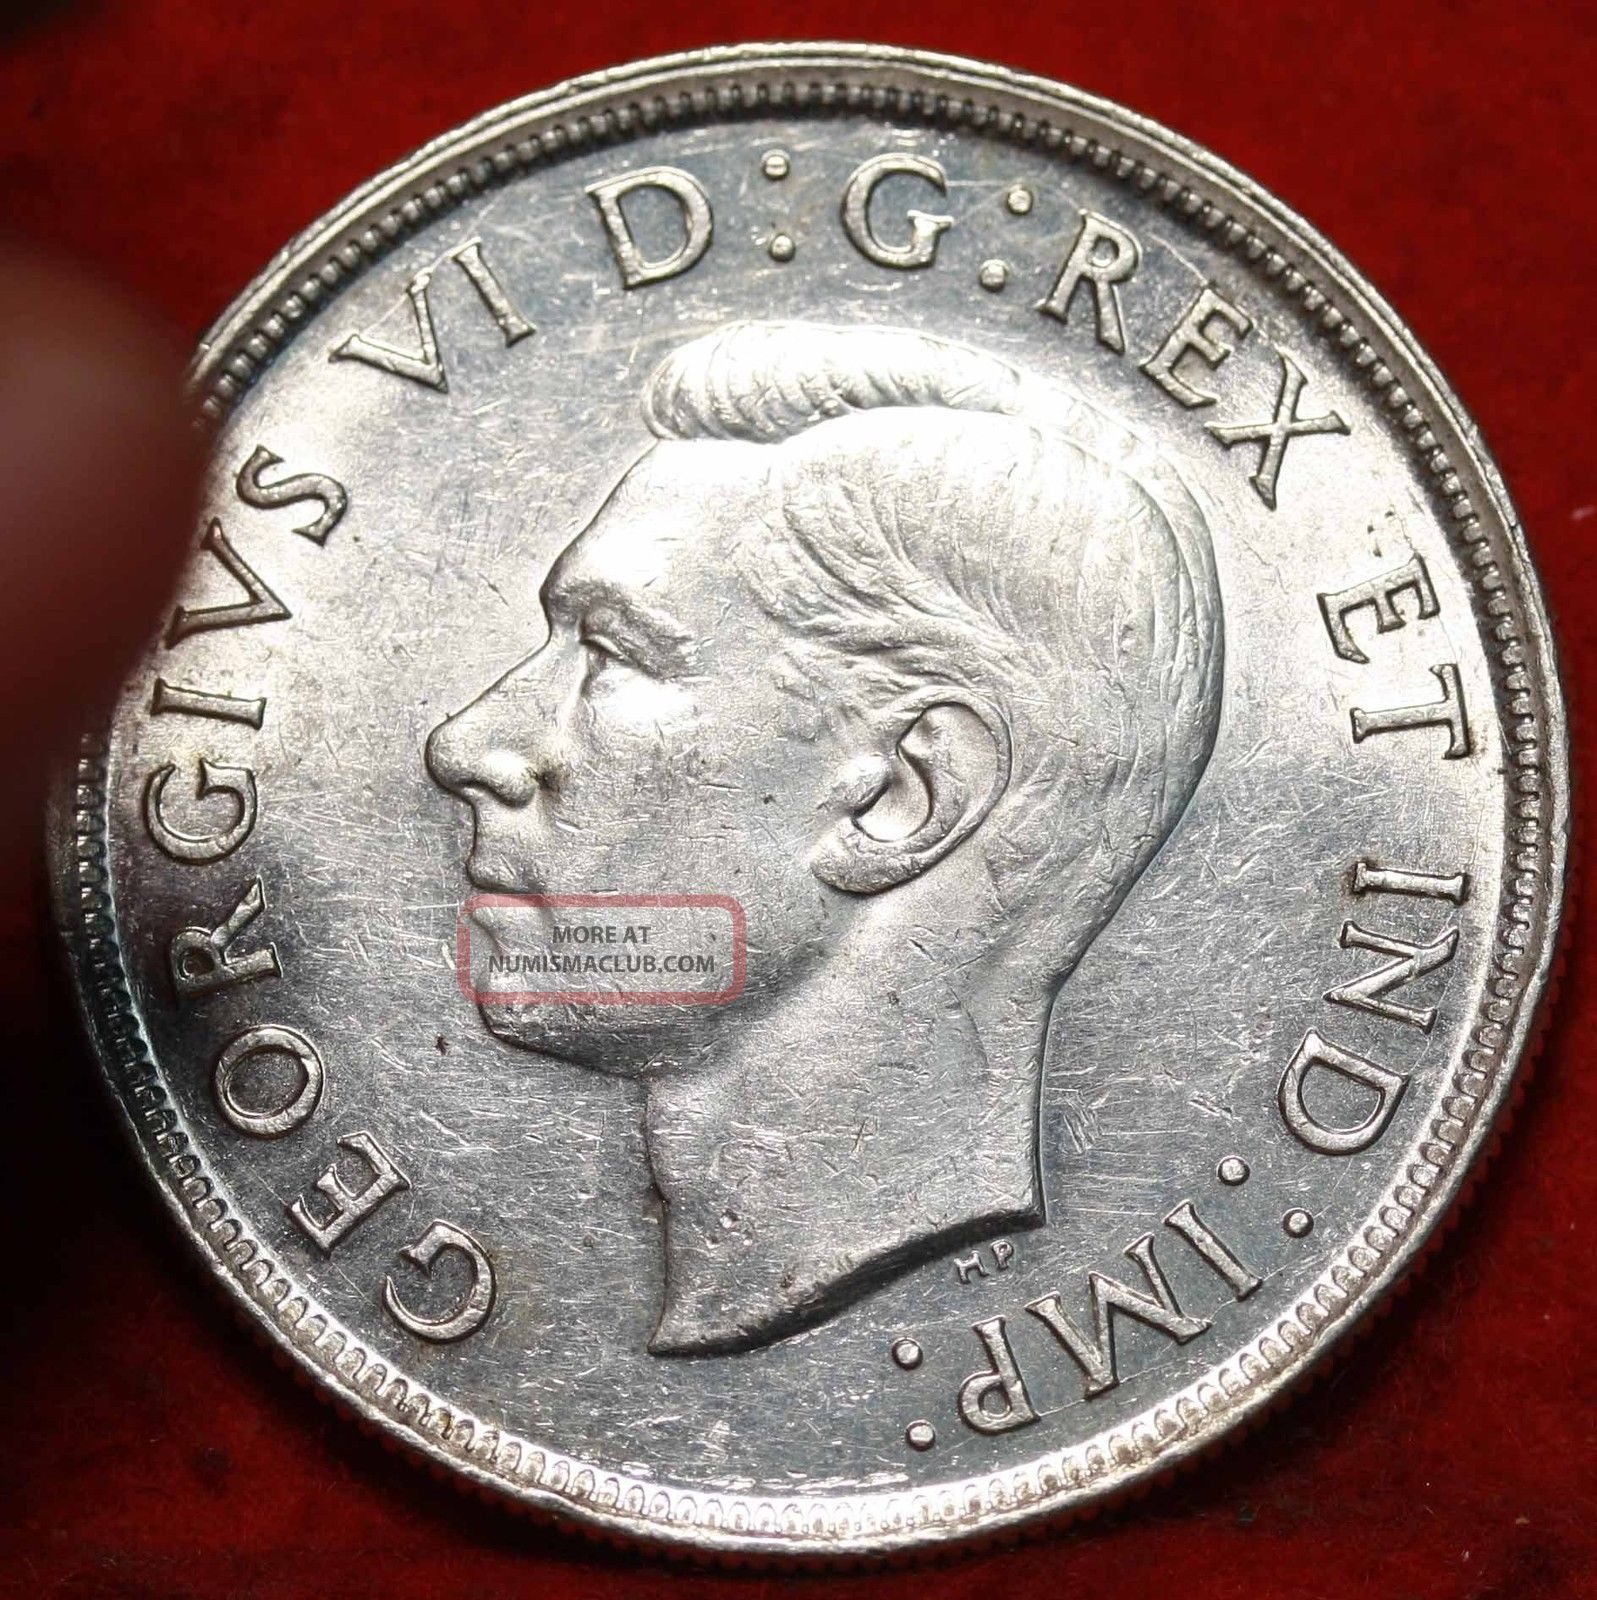 Uncirculated 1939 Canada $1 Silver Foreign Coin S/h Dollars photo